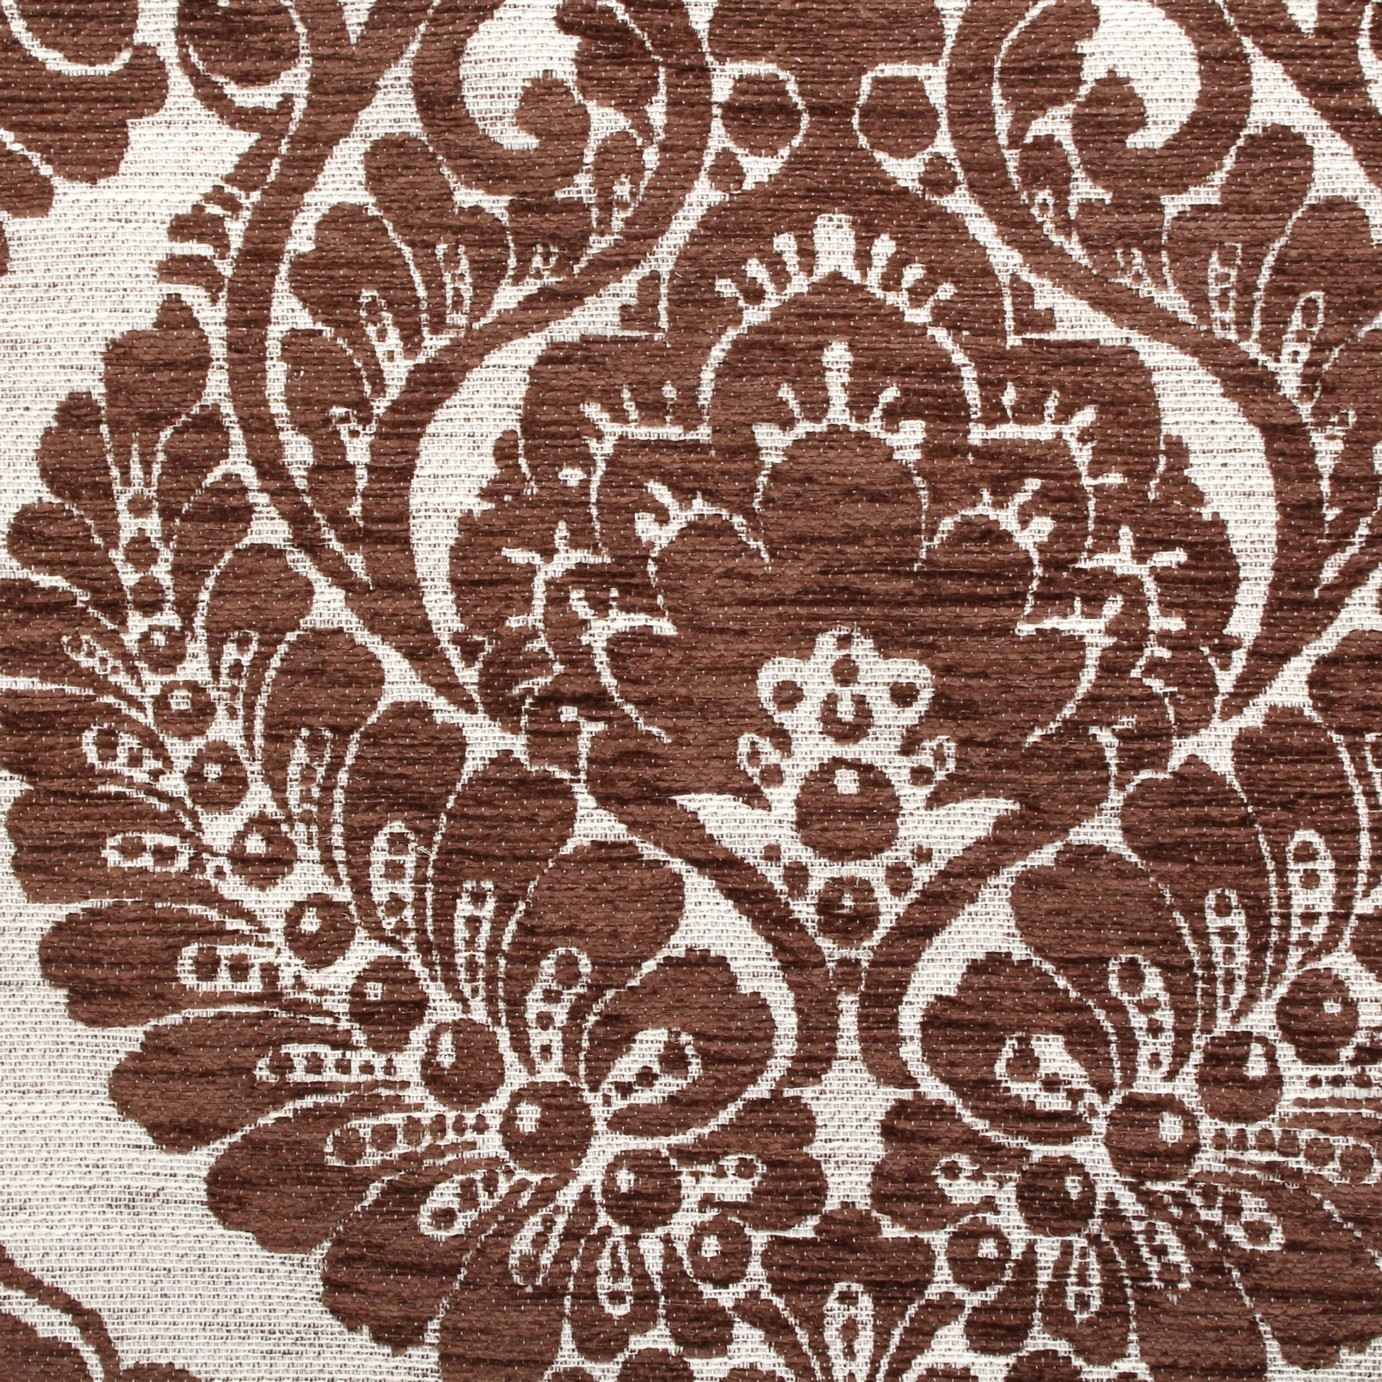 velvet sofa fabric online india set covers images heavy weight chenille floral damask dfs